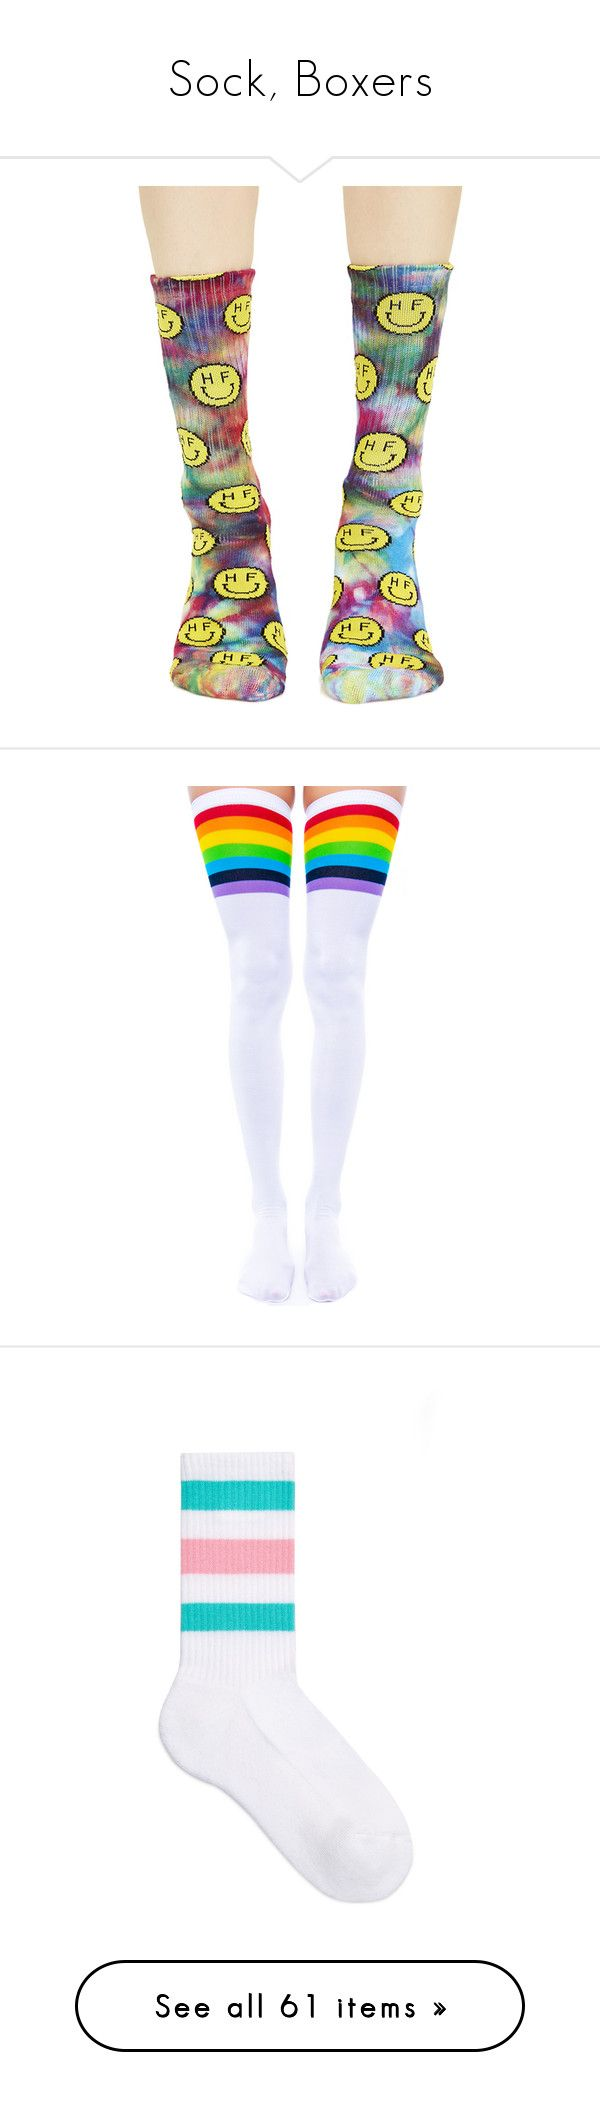 """Sock, Boxers"" by demonic-angel-baby ❤ liked on Polyvore featuring intimates, hosiery, socks, rainbow tie dye socks, rainbow socks, multi color socks, crew length socks, colorful socks, accessories and legs"